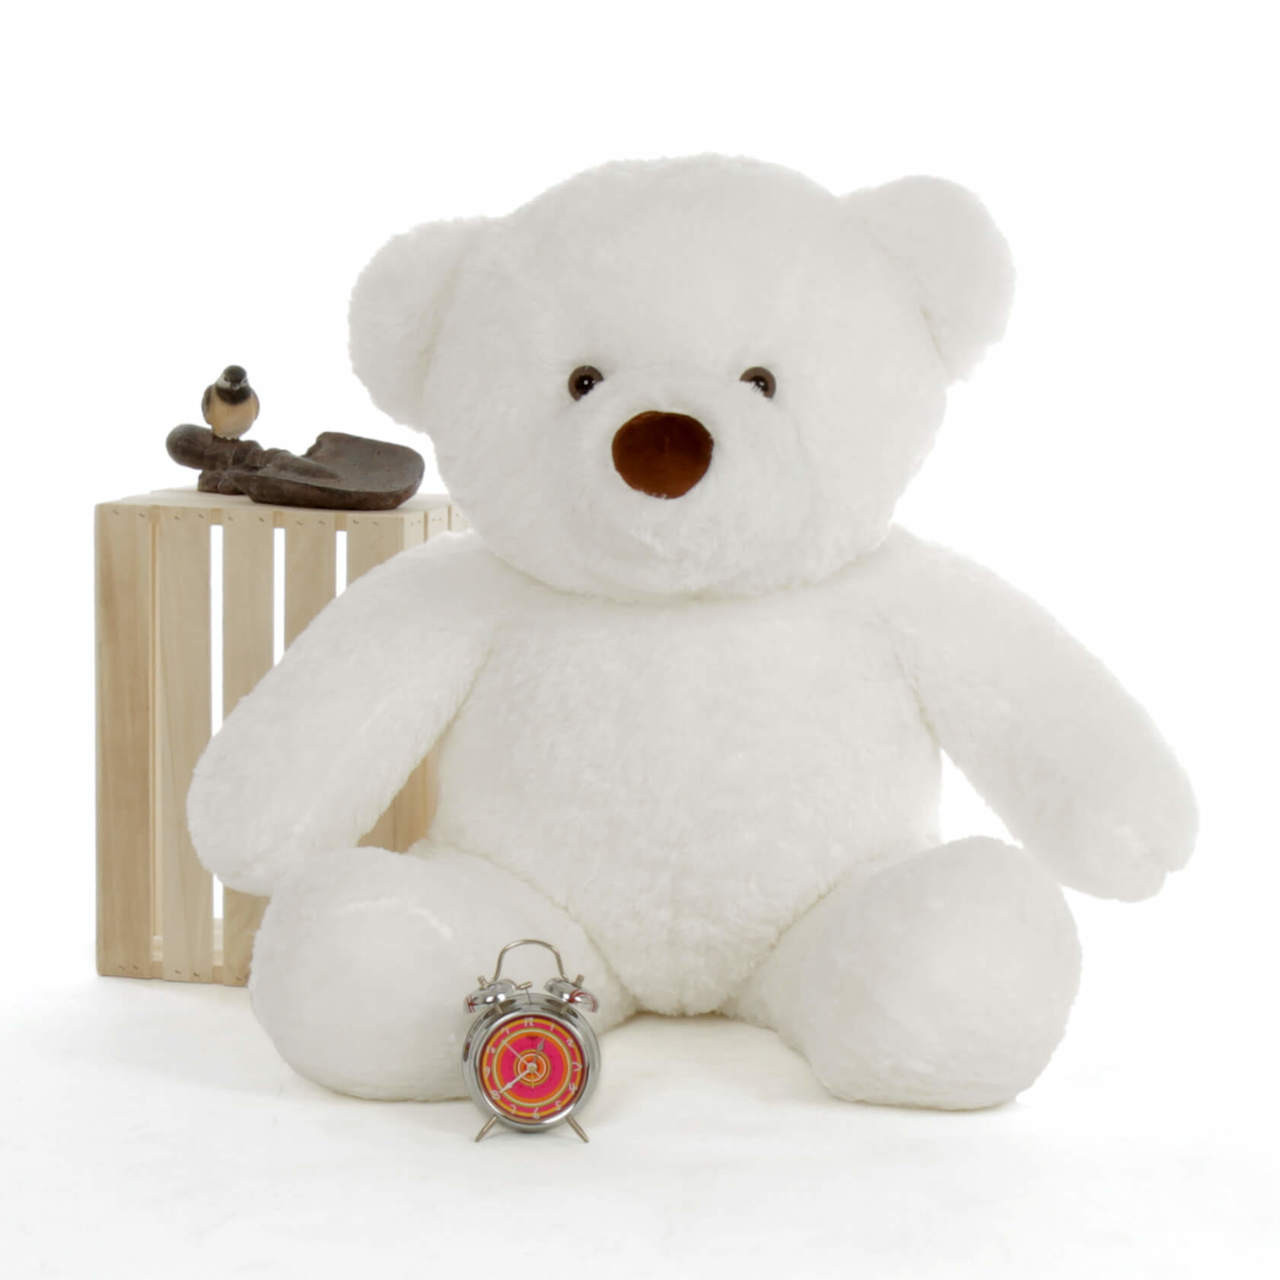 48in Huge White Bear by Giant Teddy (Clock and Props are NOT included)